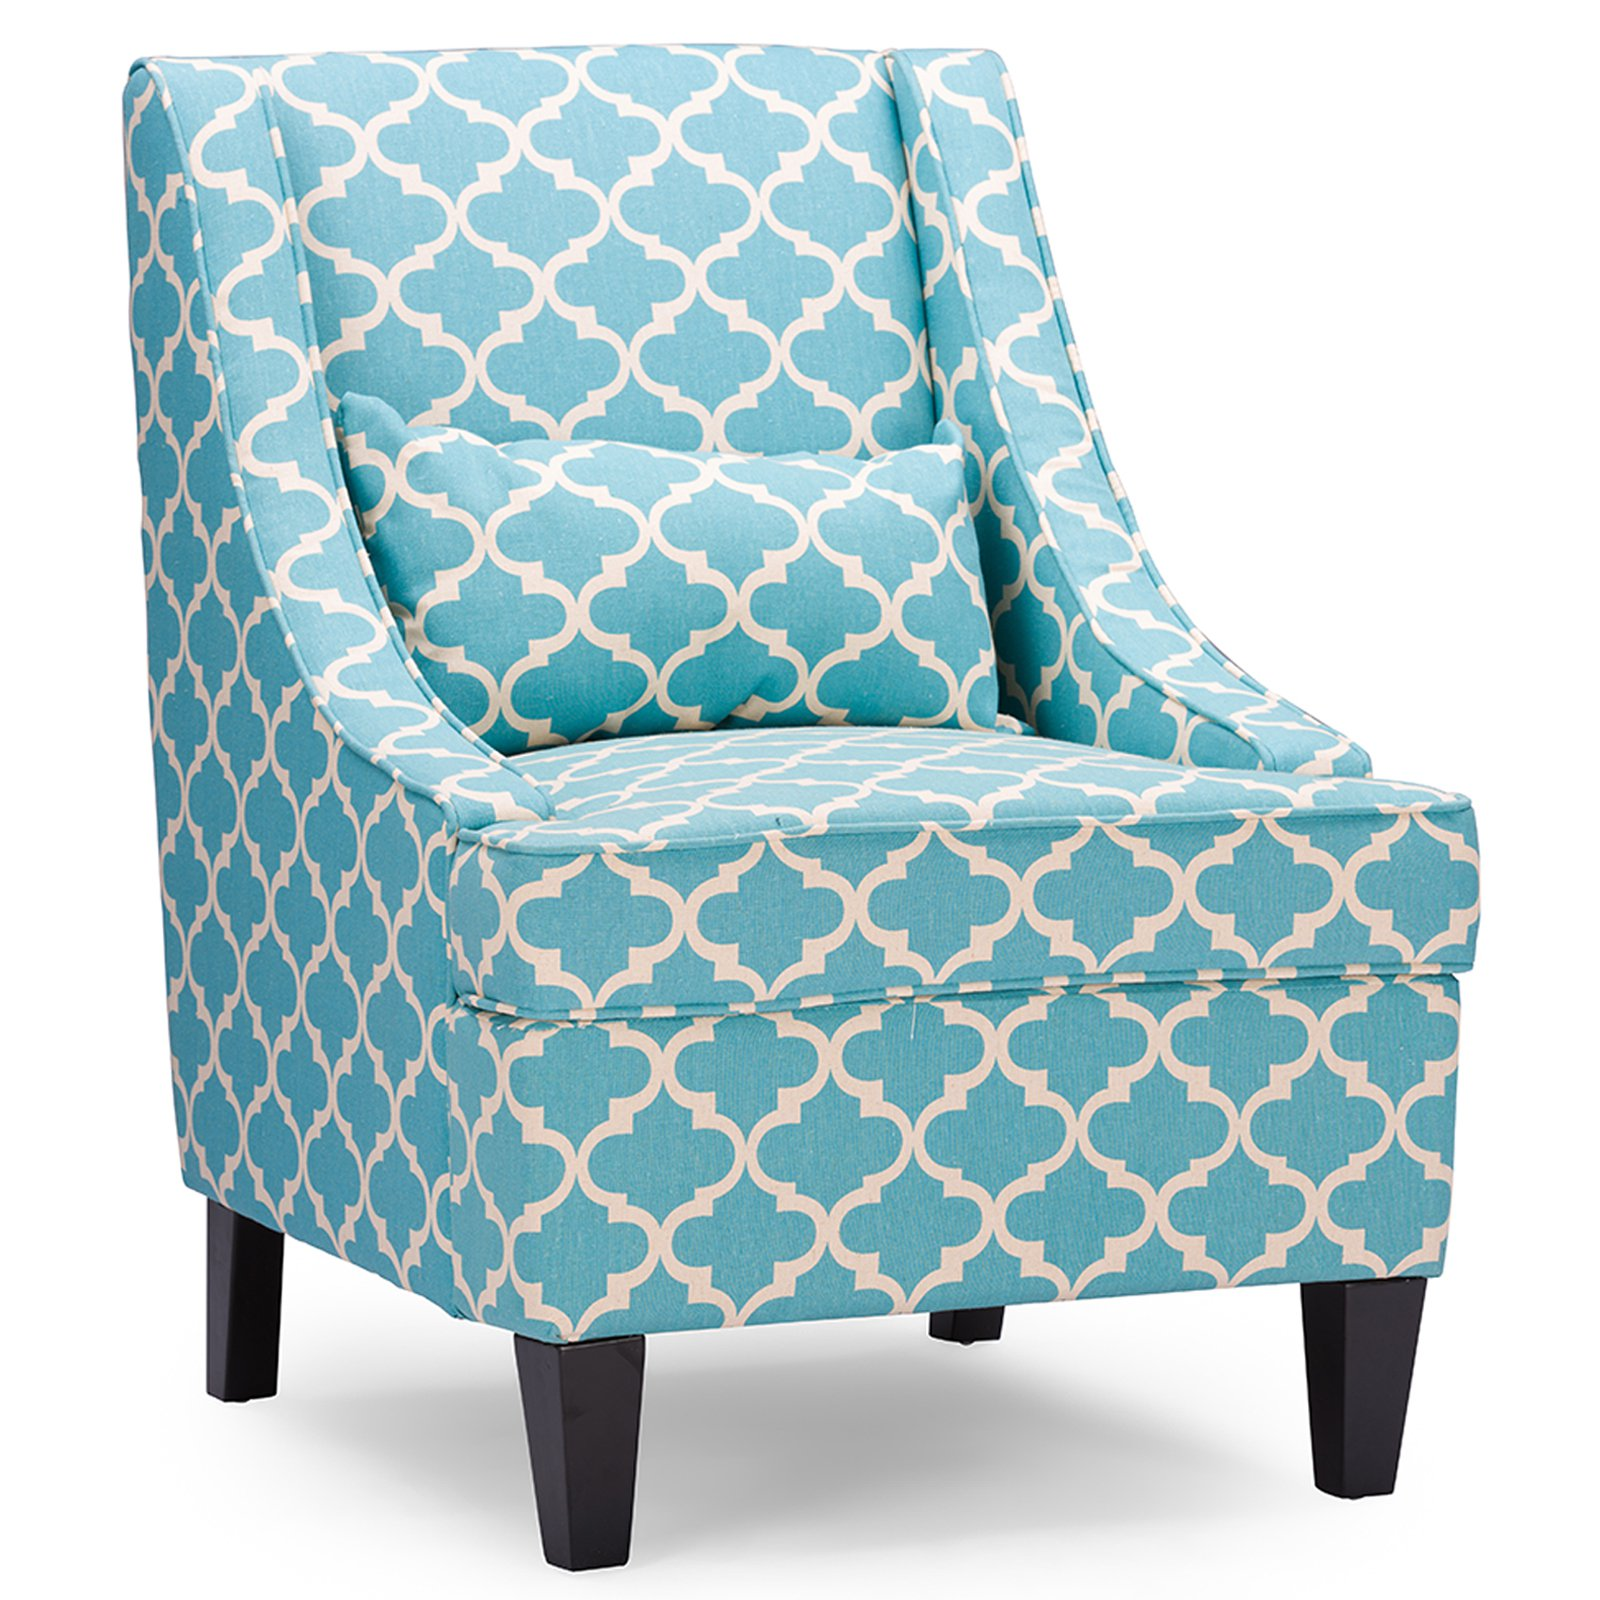 Baxton Studio Lotus Contemporary Fabric Armchair, Blue-Patterned Fabric